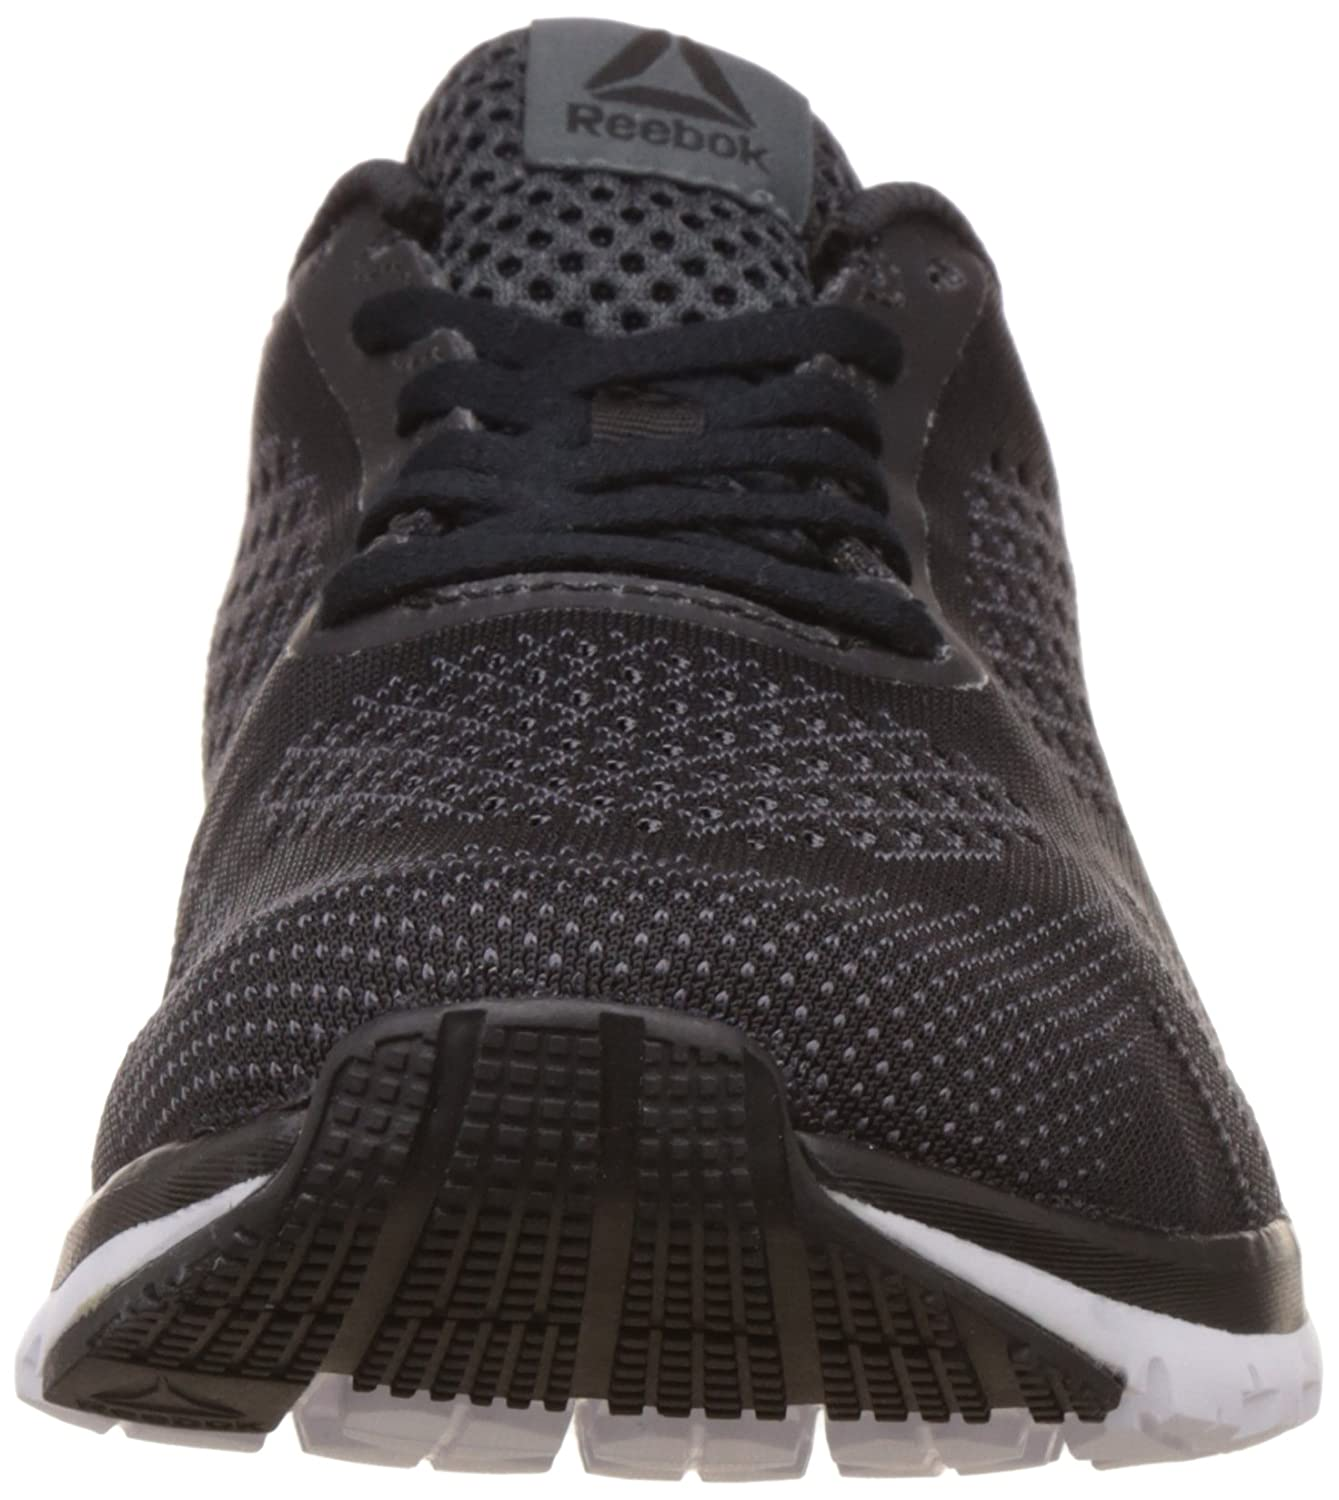 new arrivals 2f47a fe98c Reebok Men s Print Smooth Ultk Running Shoes  Buy Online at Low Prices in  India - Amazon.in